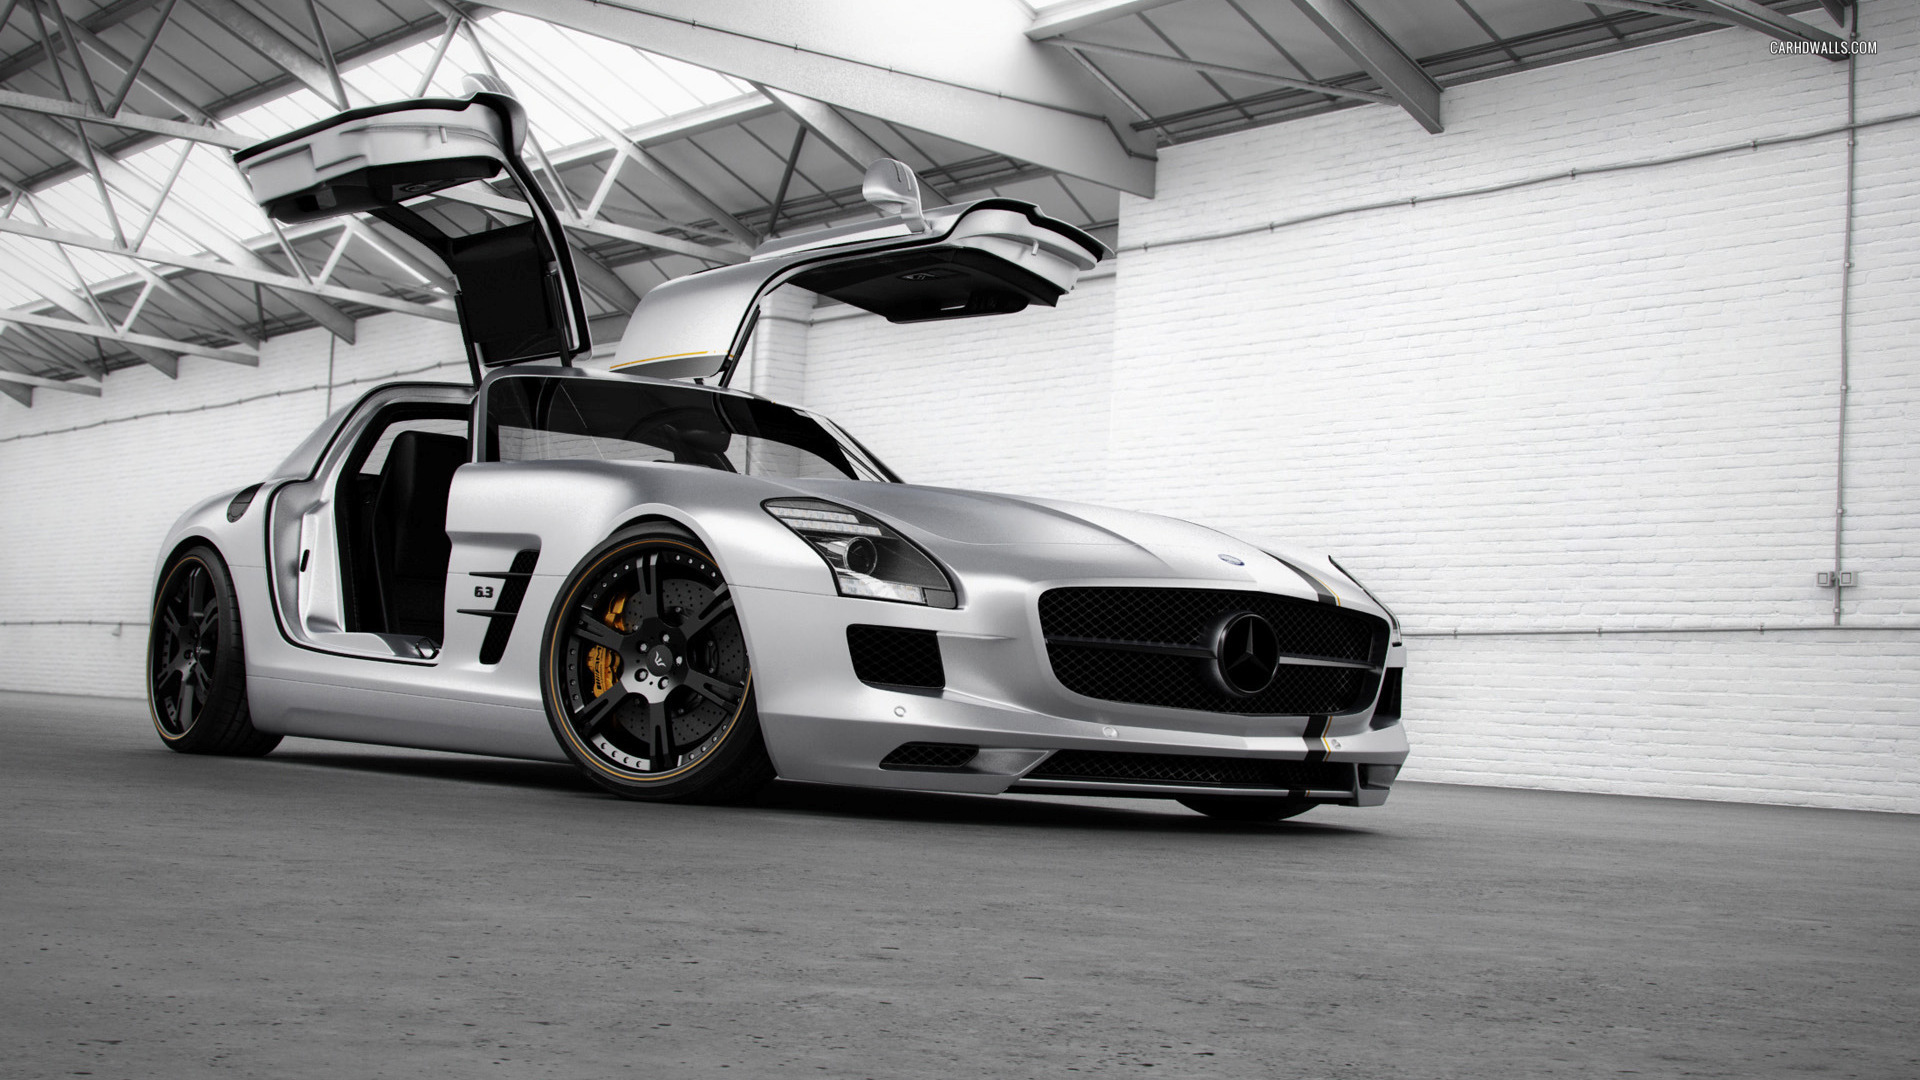 Mercedes benz sls amg wallpapers pictures images for 2015 mercedes benz sls amg